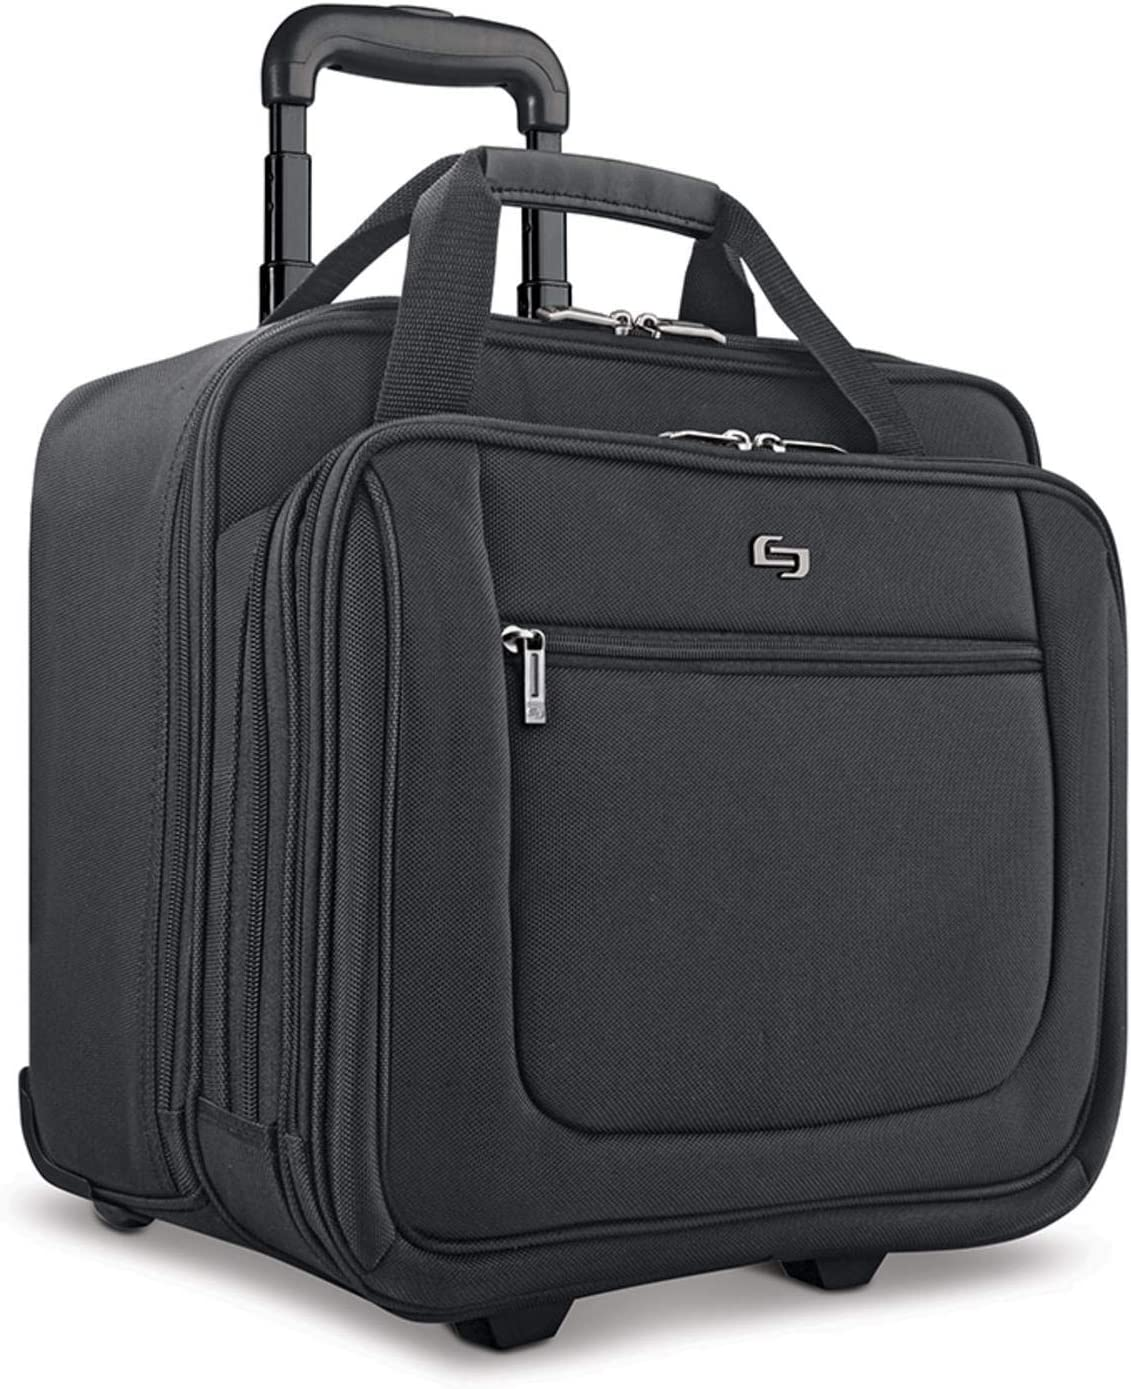 Solo New York Bryant Rolling Bag with Wheels, Fits Up to 17.3-Inch Laptop, Black, 14